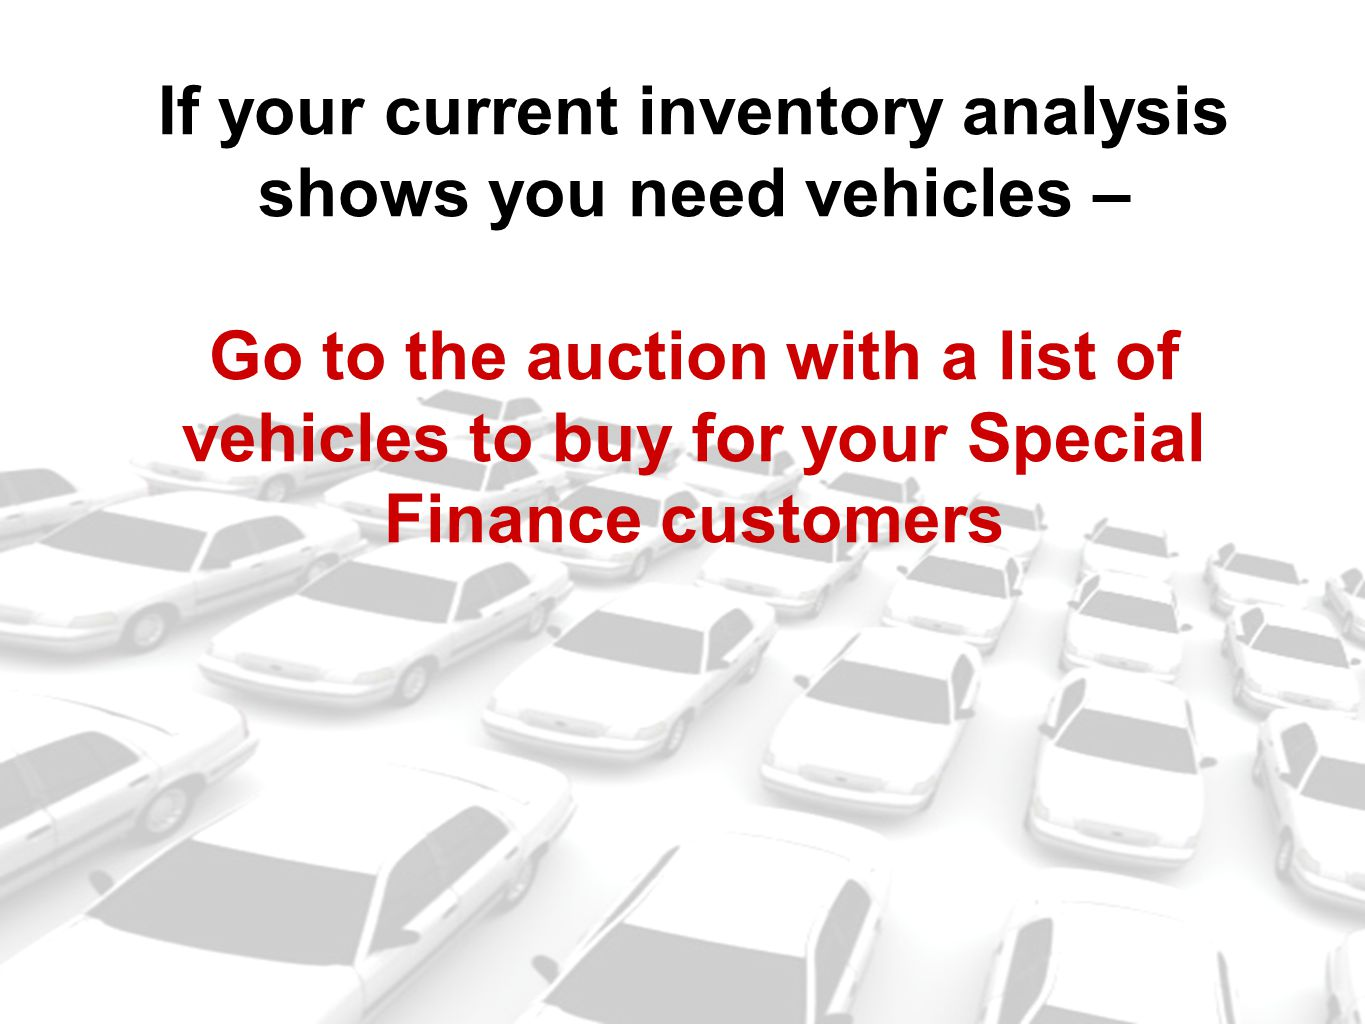 If your current inventory analysis shows you need vehicles – Go to the auction with a list of vehicles to buy for your Special Finance customers